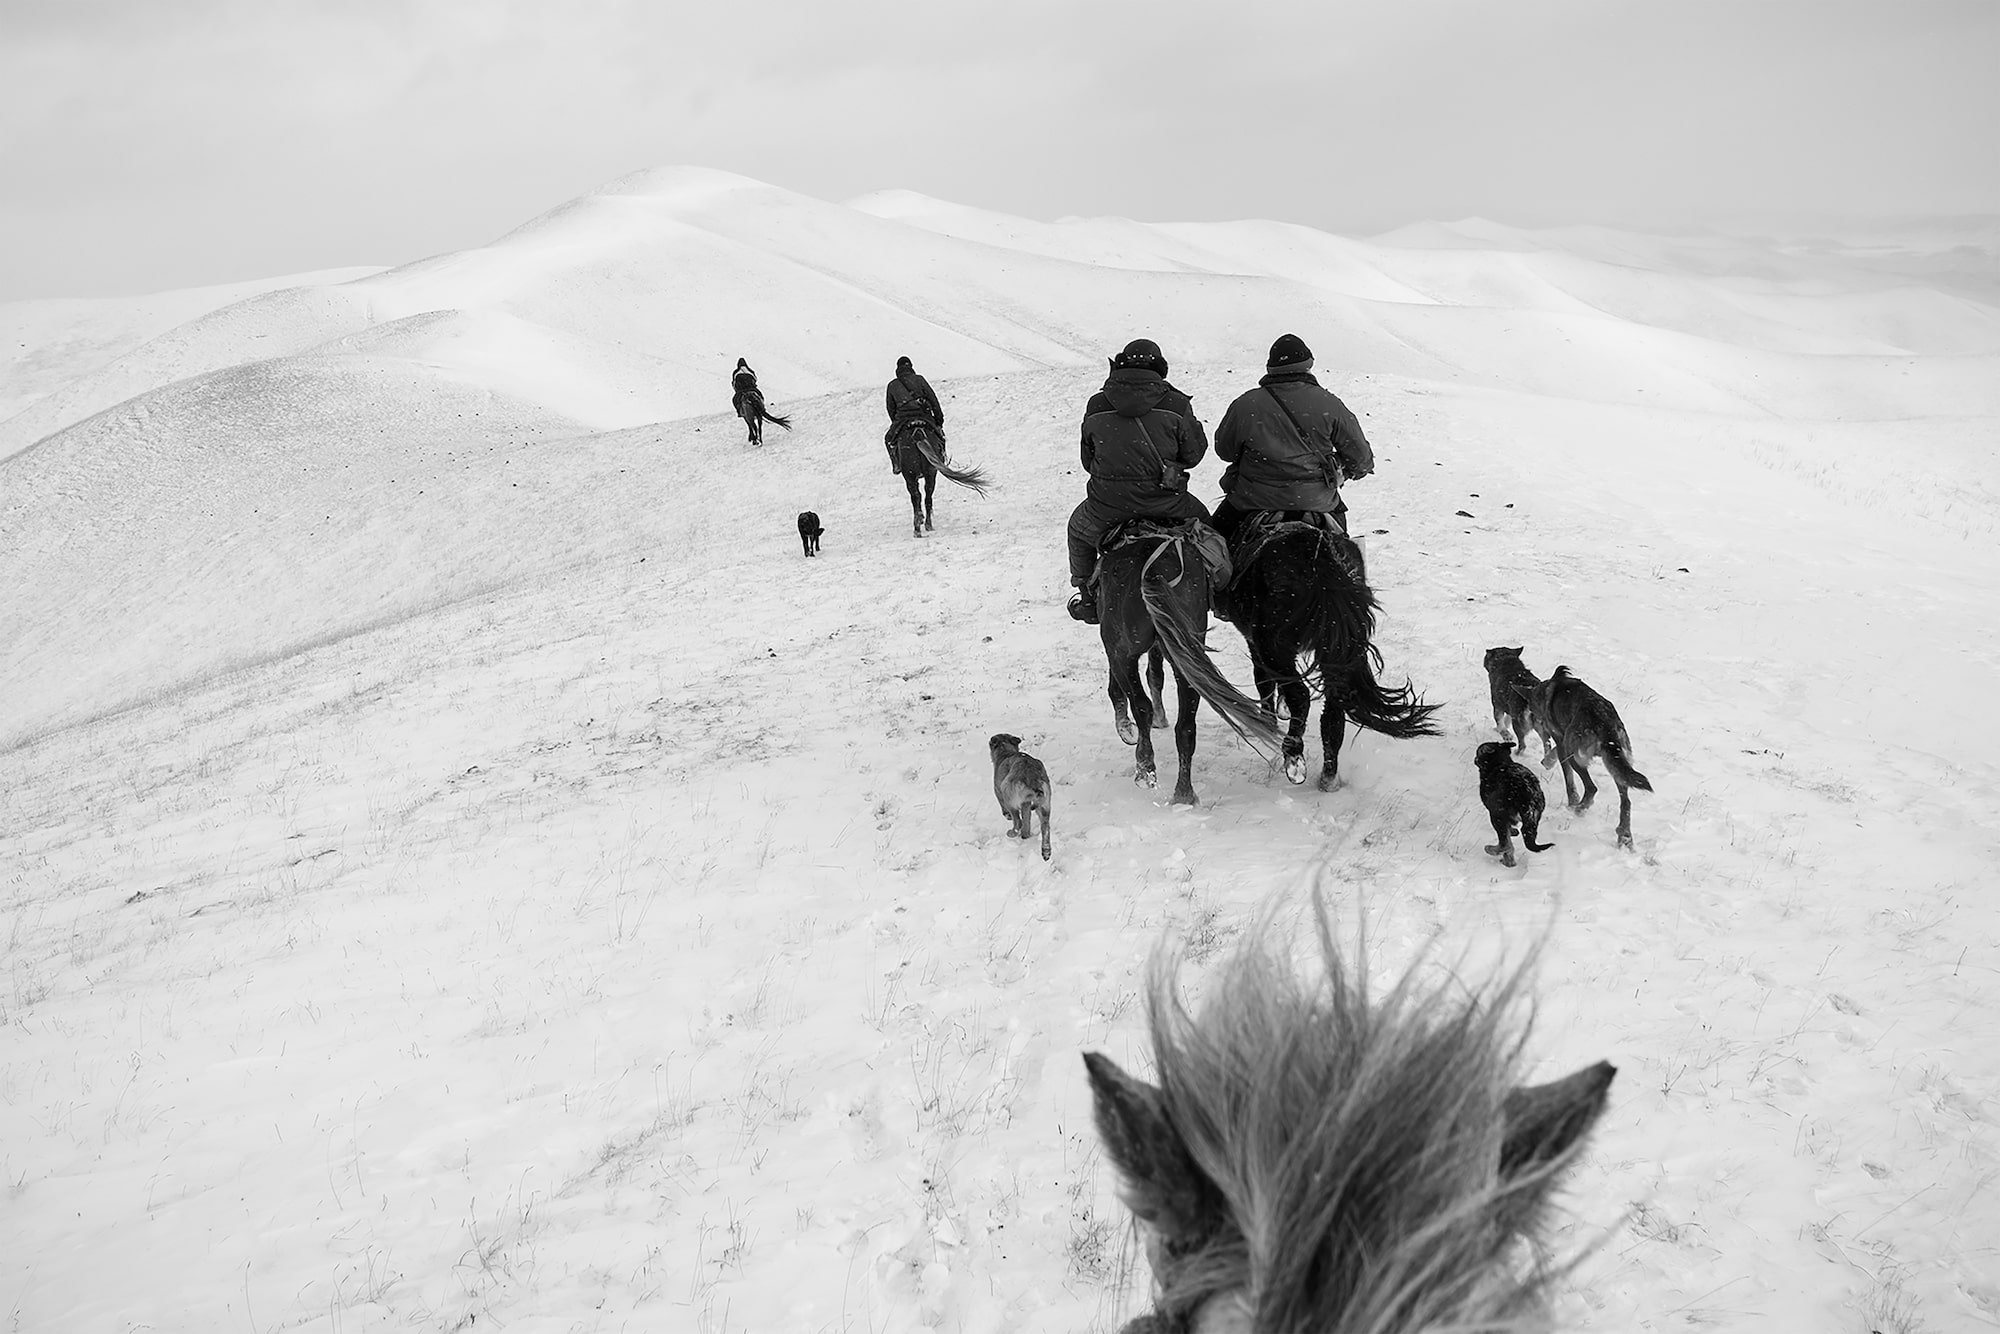 frederik buyckx sony alpha 7RM3 horseback rider follows a group of riders with their dogs across the snow